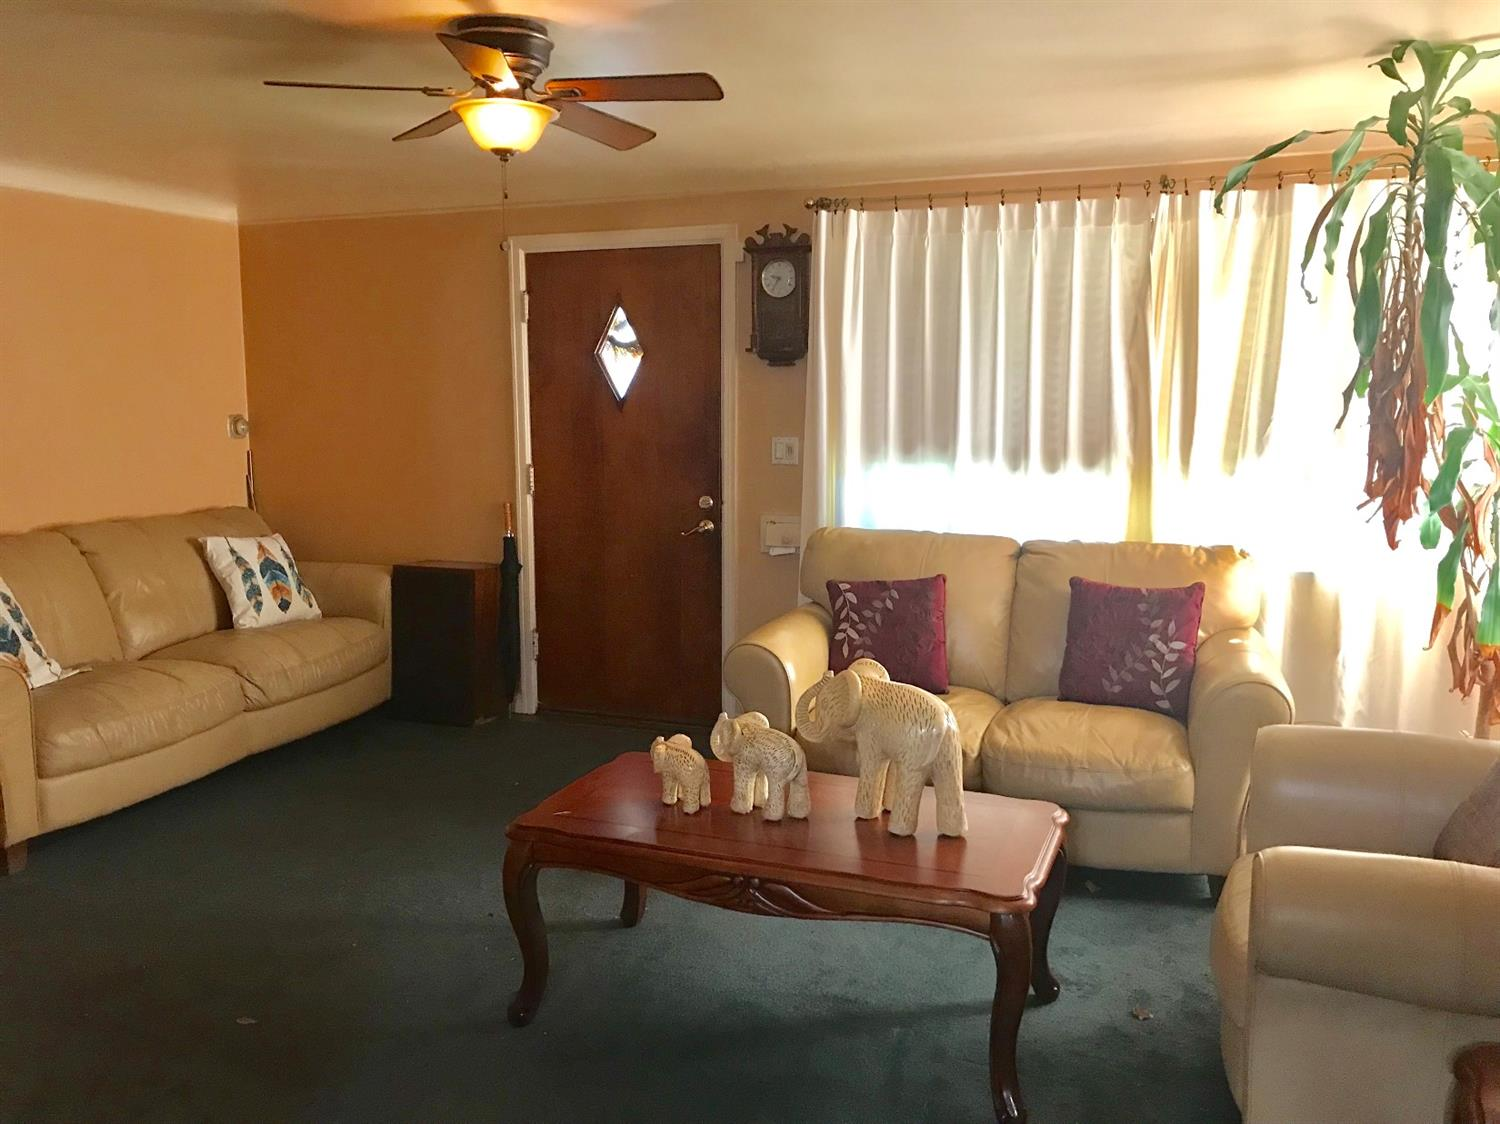 Photo 3 for 1813 Colmar Ln Roselawn, OH 45237